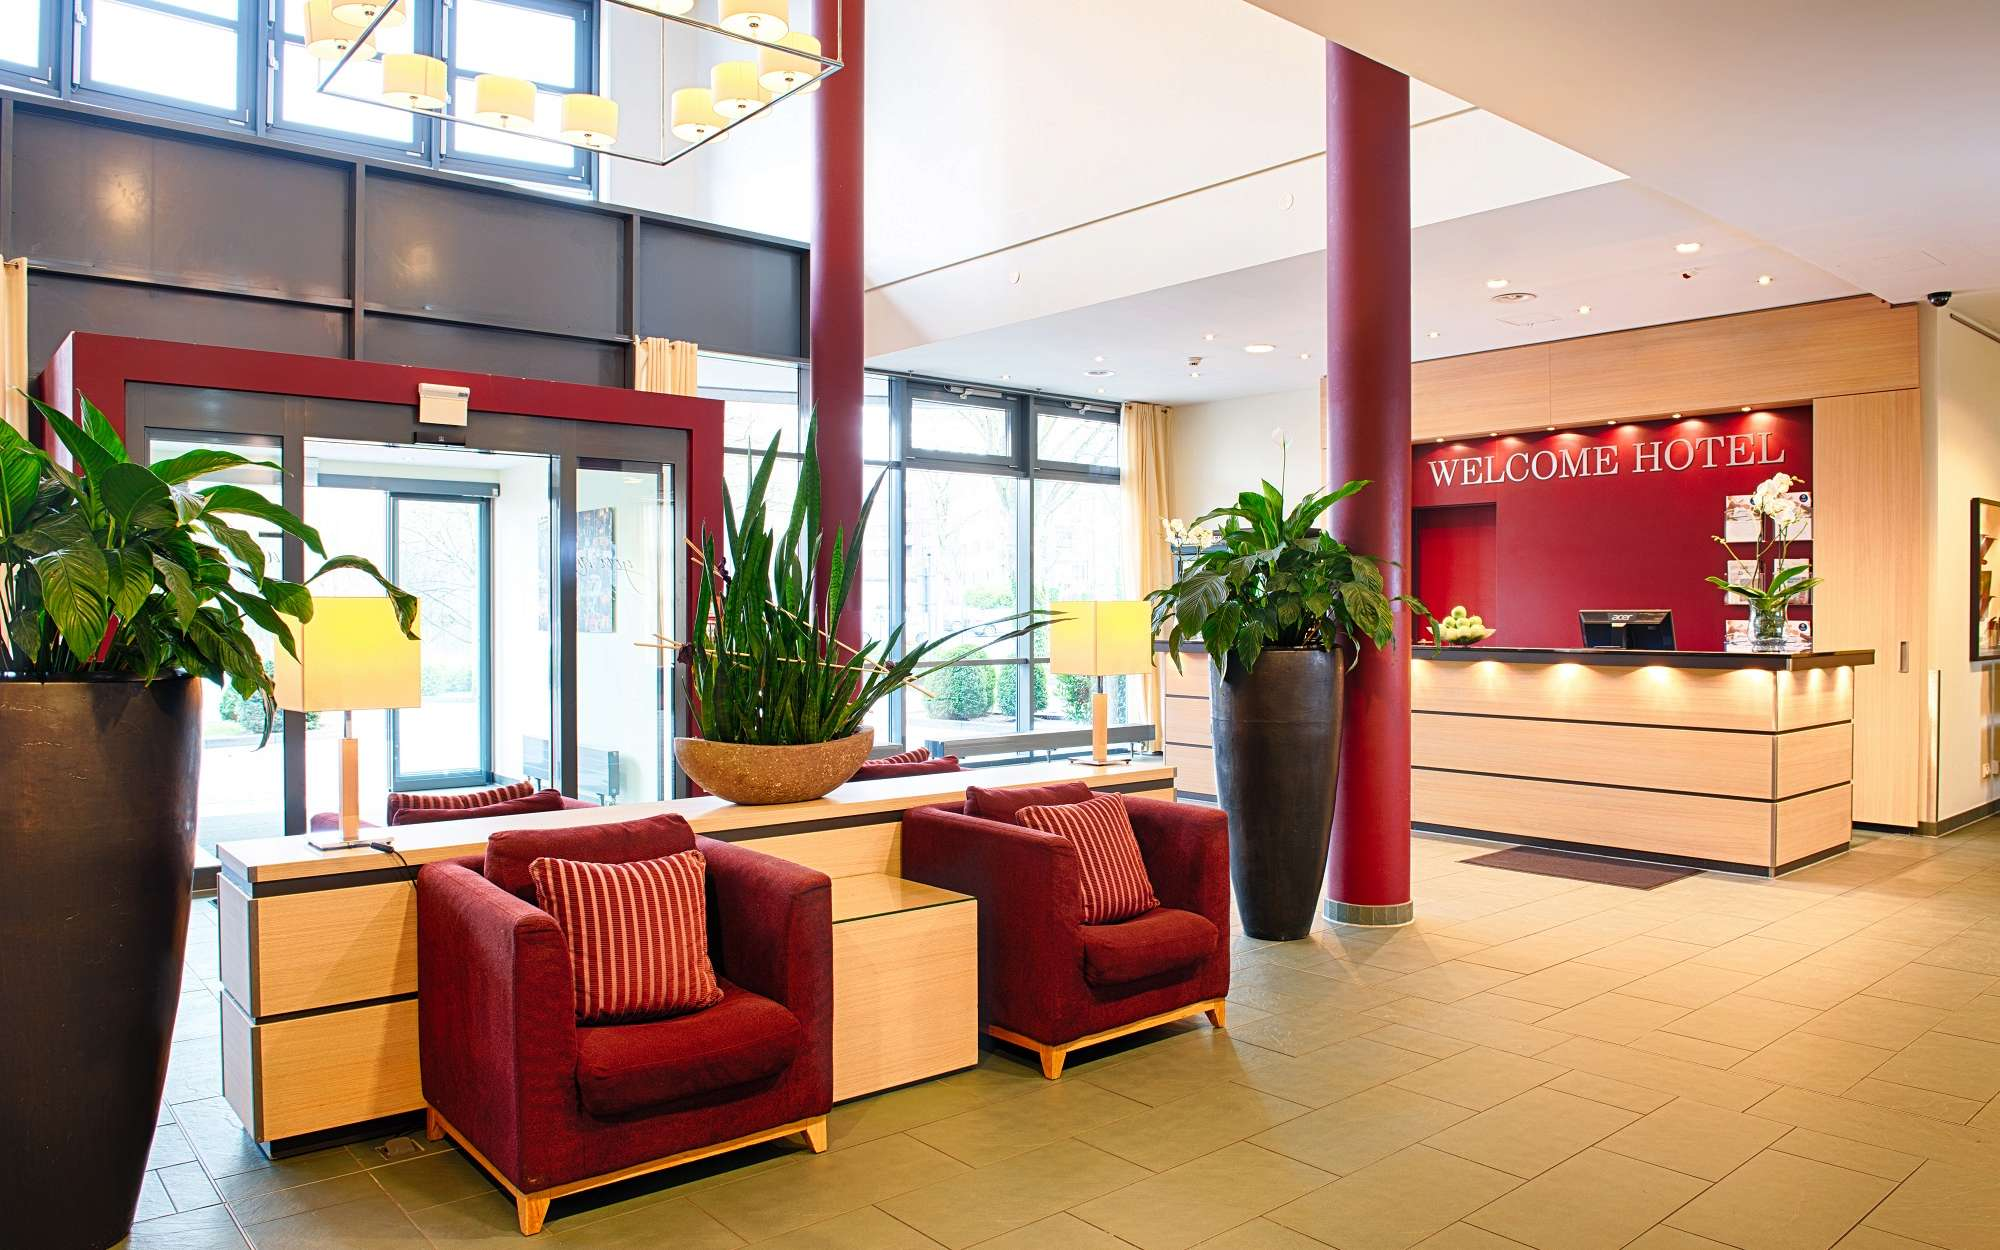 Welcome Hotel Paderborn Lobby 3 Klein